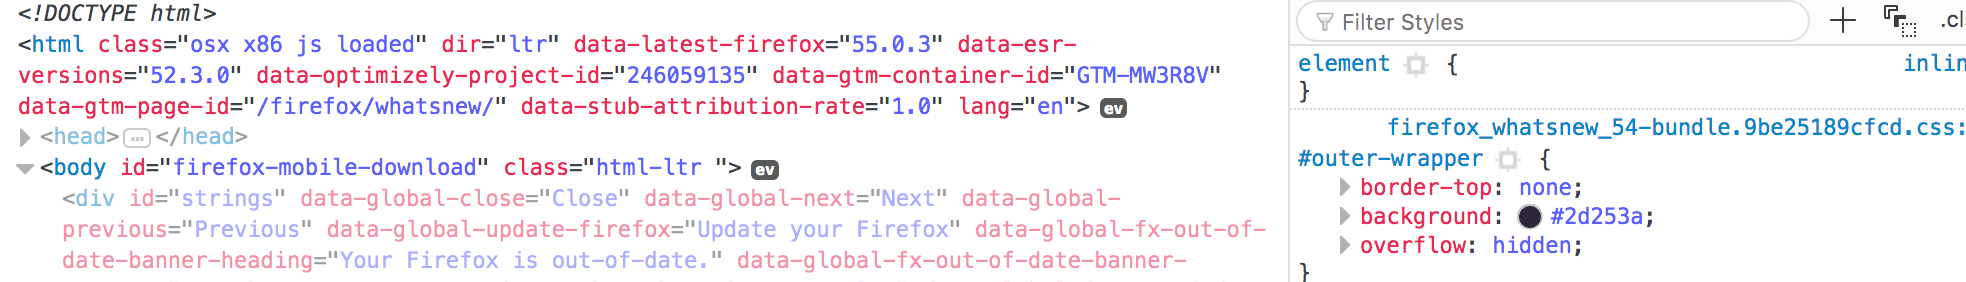 Firefox's current syntax highlighting